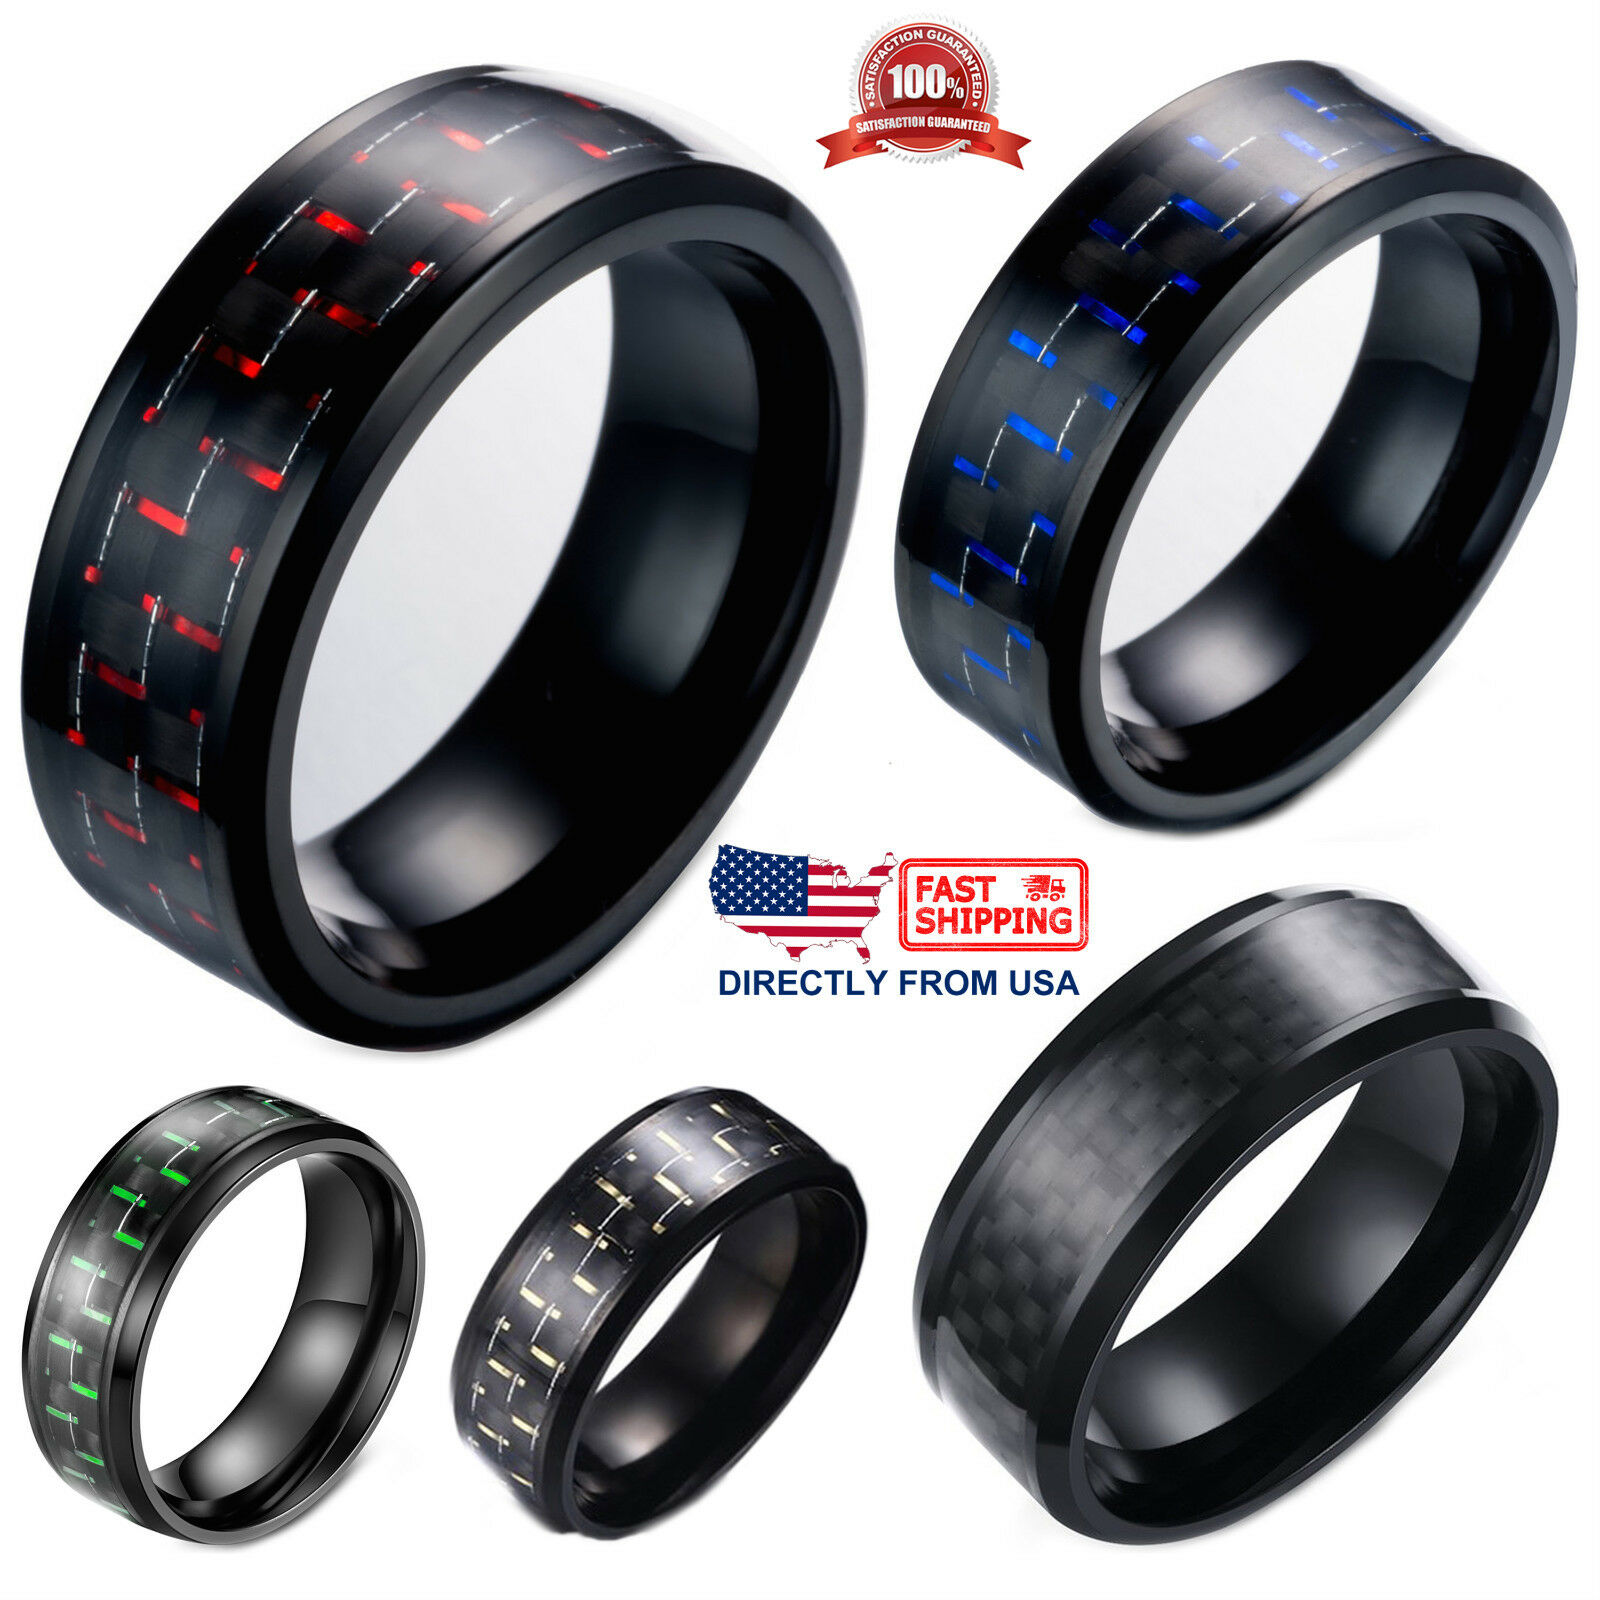 Men's Ring Stainless Steel and Carbon Fiber 8mm Wedding Band, Comfort Fit Jewelry & Watches